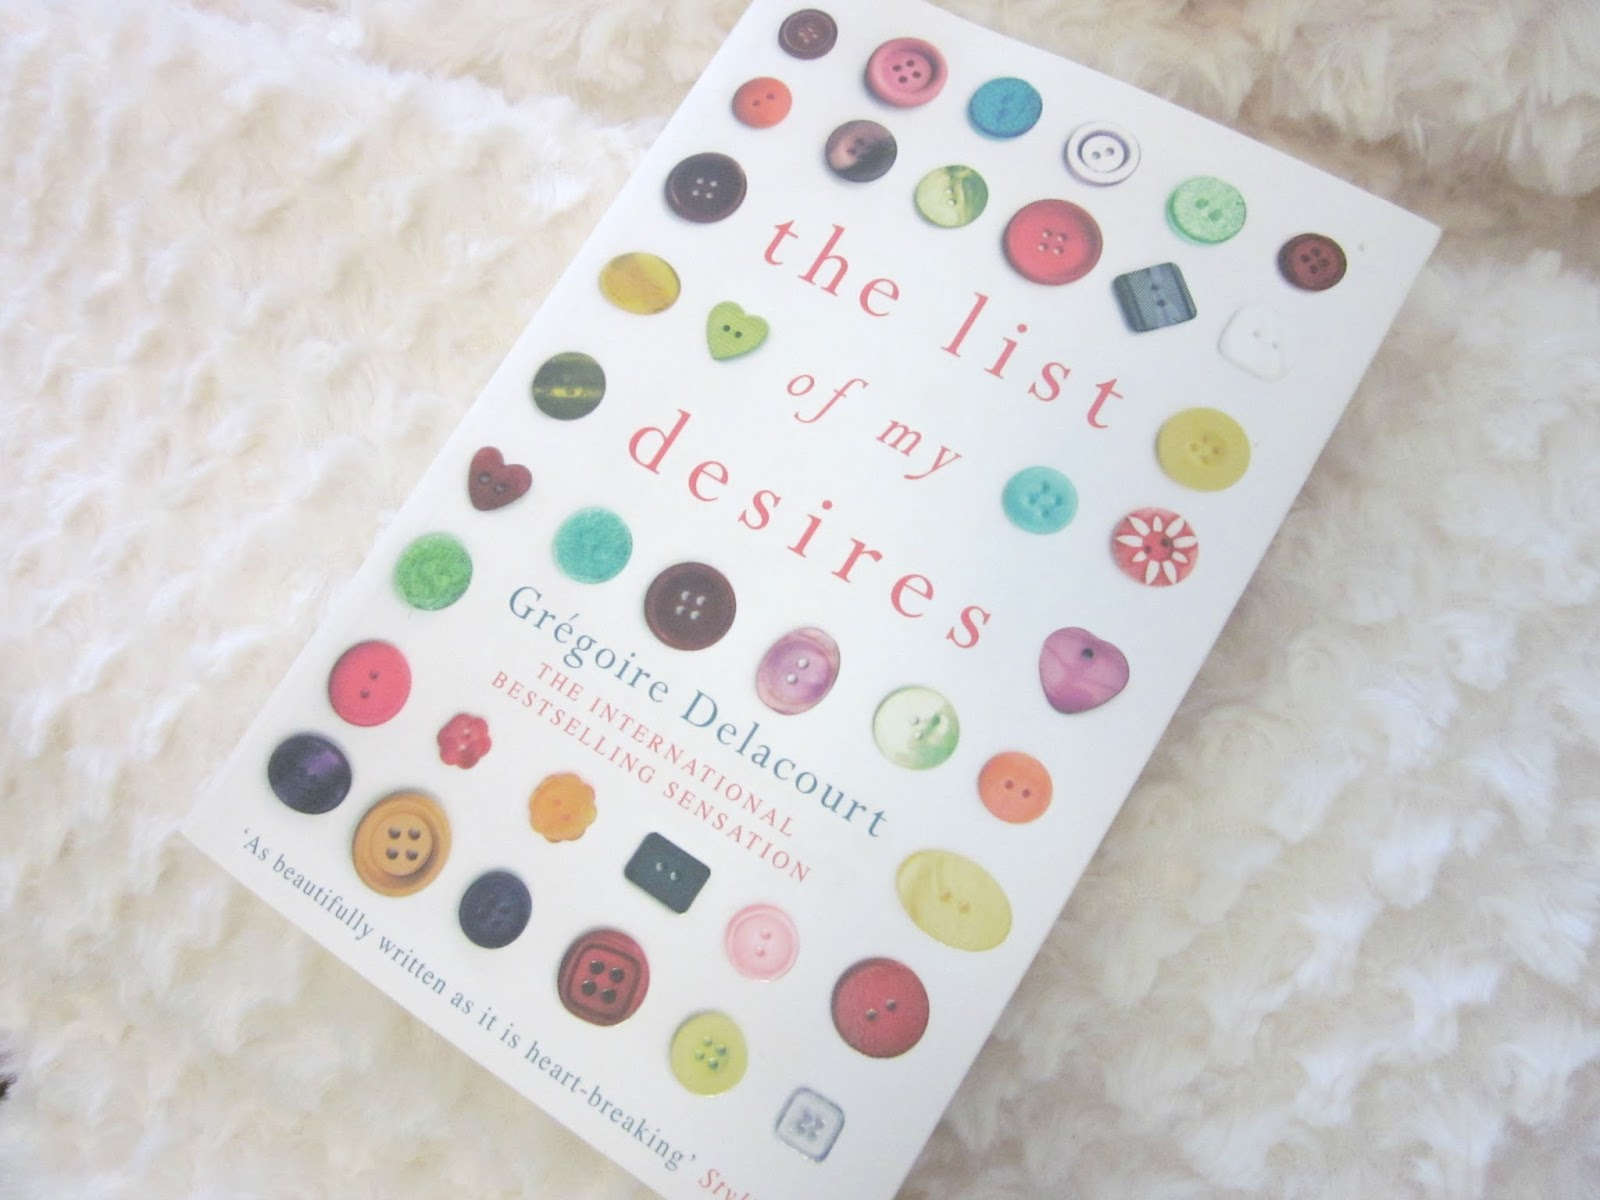 The List of My Desires paperback book with button cover